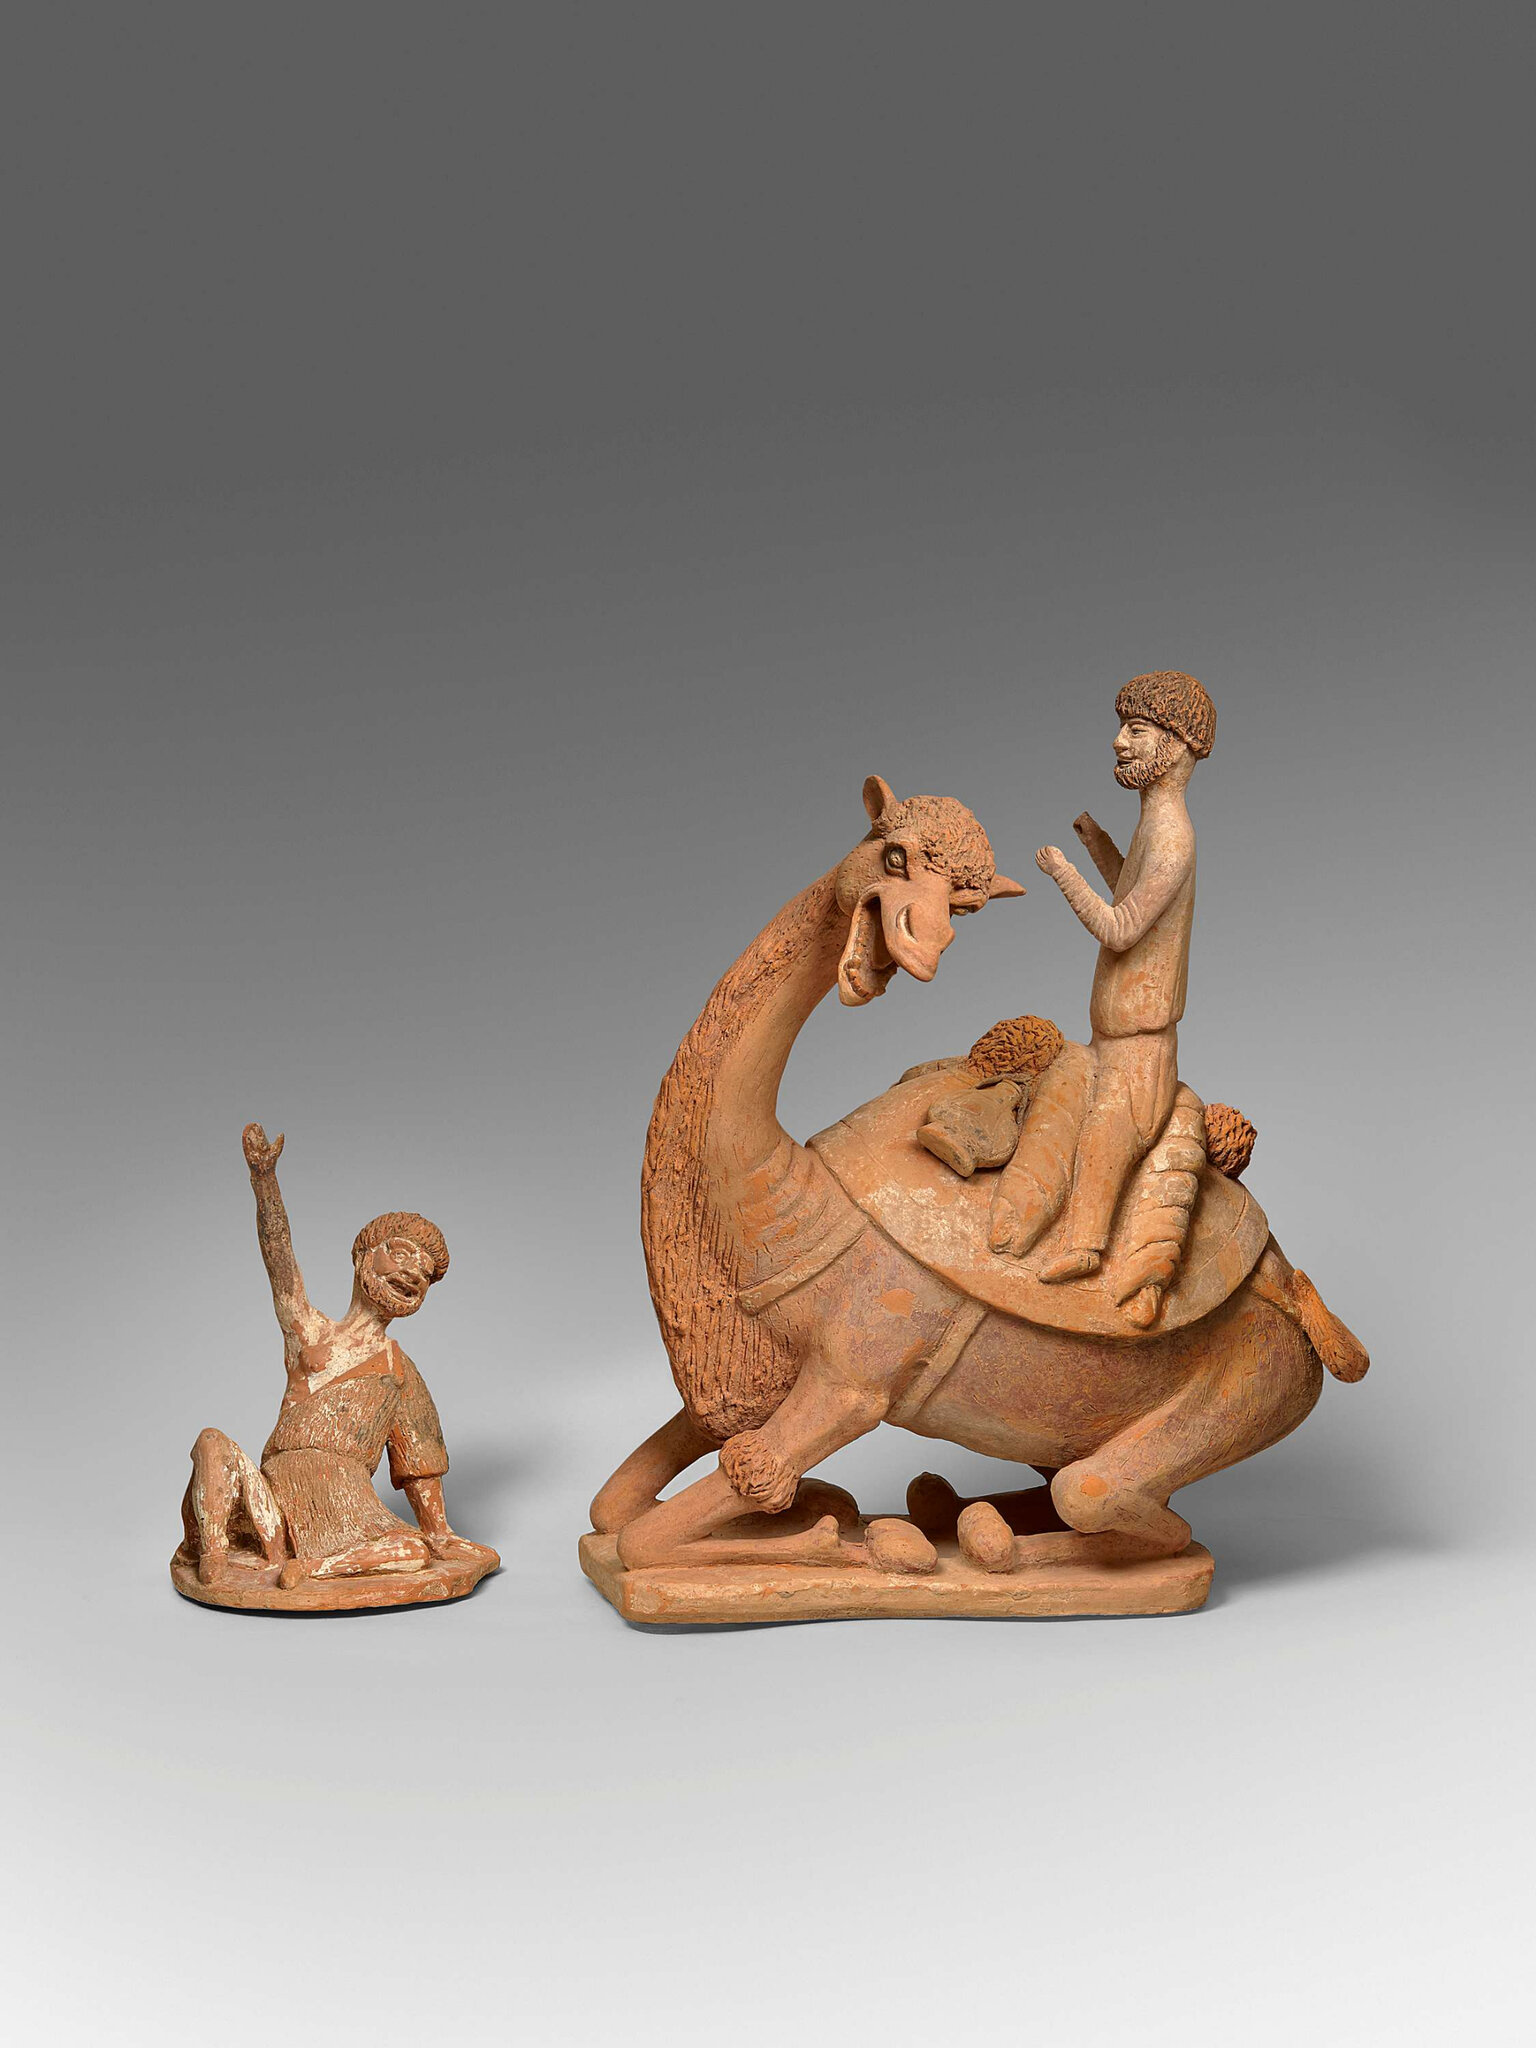 Camel and beggar, China, Tang Dynasty (618-907), 8th century